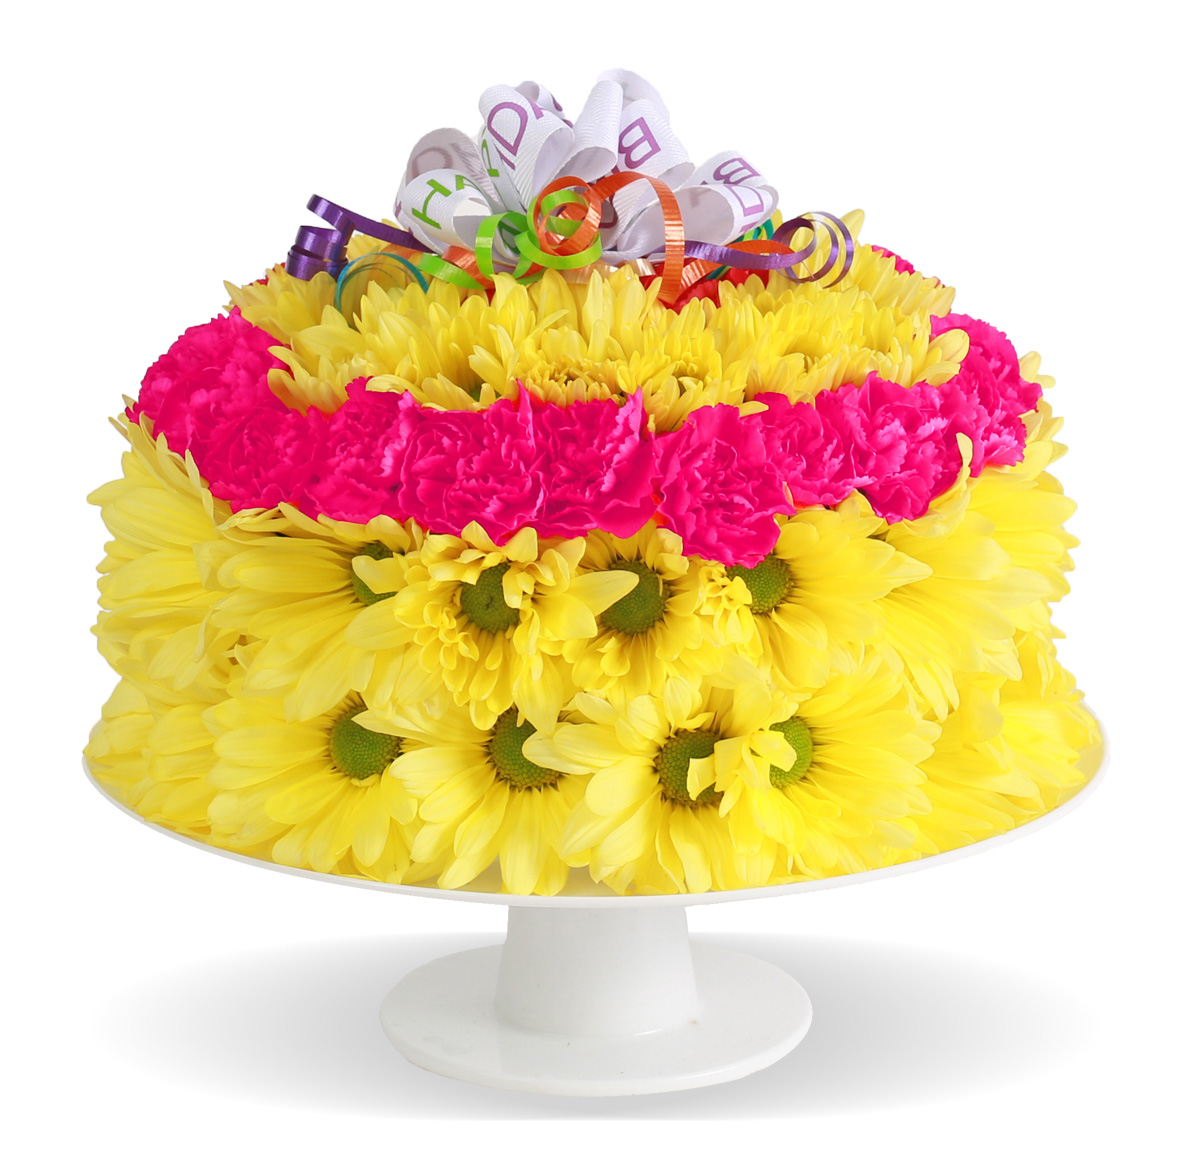 Home fresh flower birthday cake columbus oh florist flowerama fresh flower birthday cake izmirmasajfo